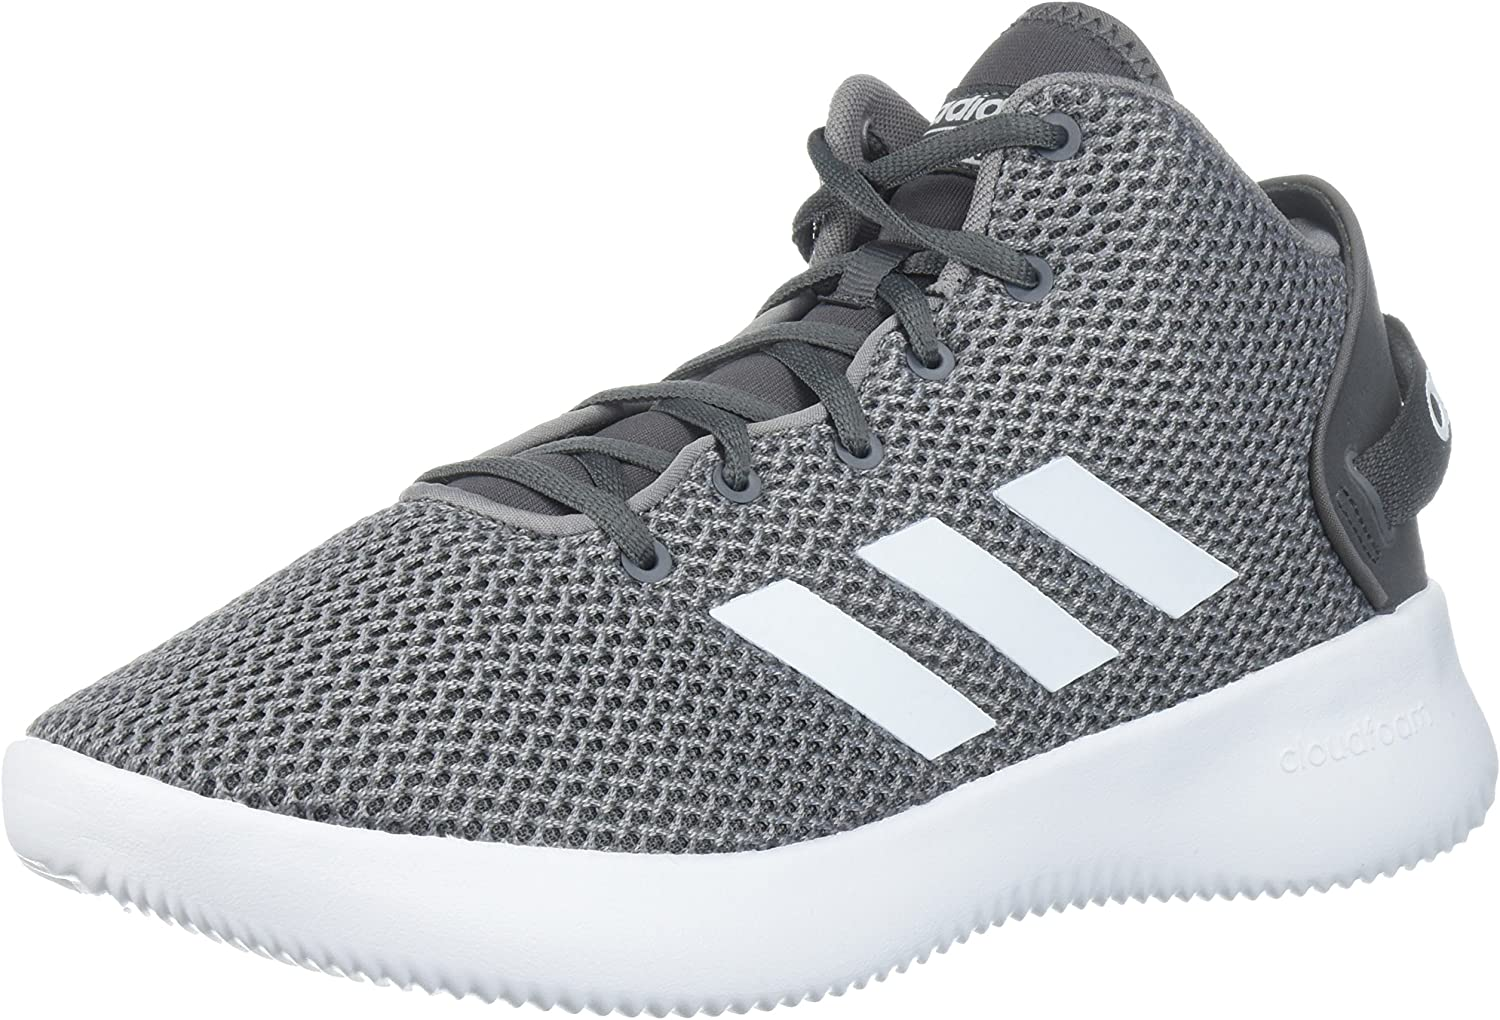 Adidas Men's Cloudfoam Refresh Mid Mid-Top Fabric Basketball shoes